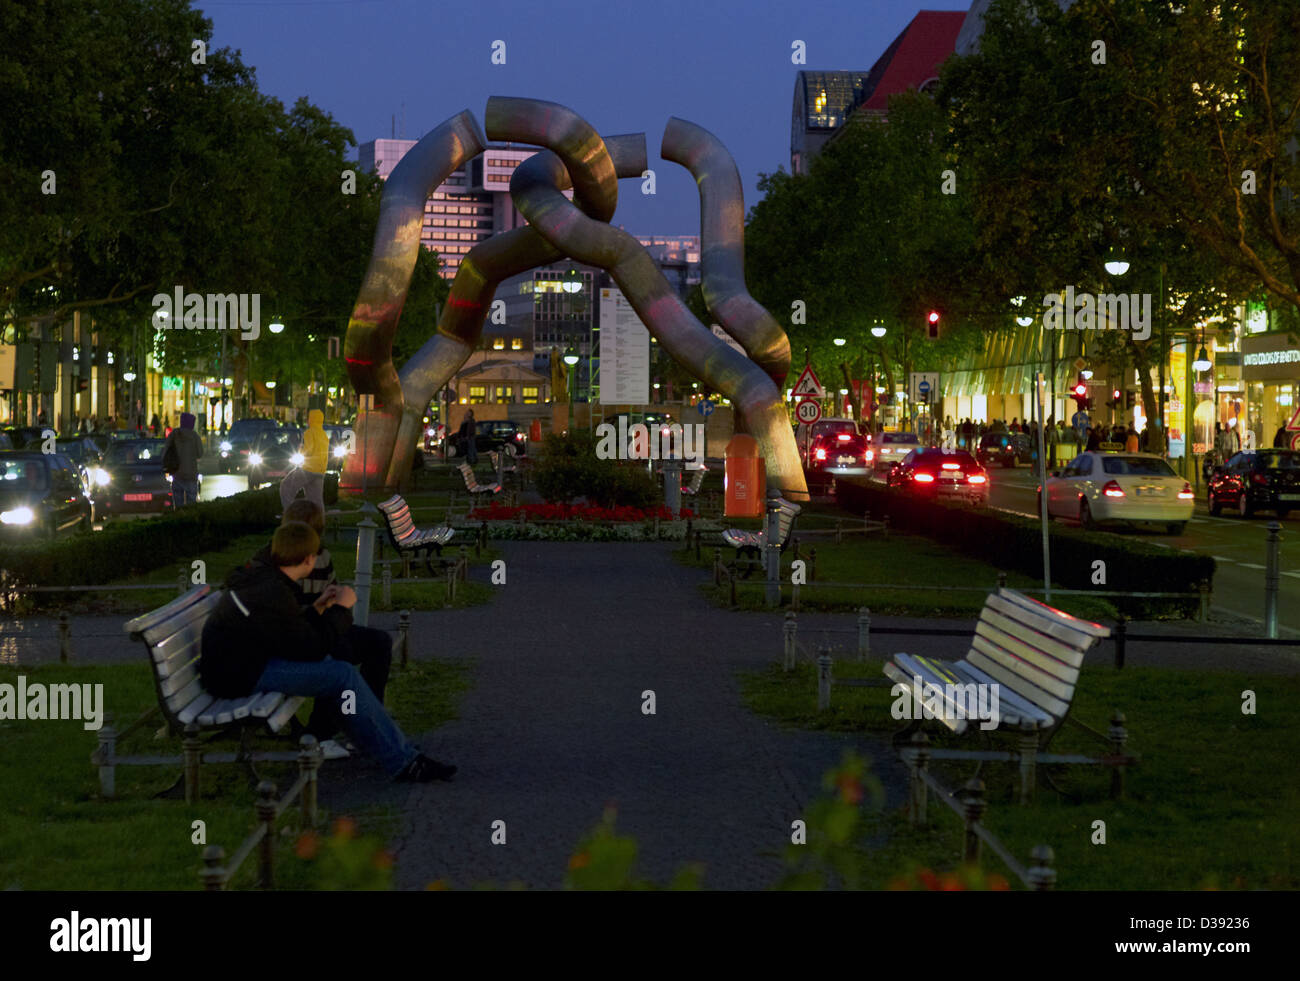 Berlin, Germany, the sculpture titled Berlin-on Tauentzienstrasse - Stock Image